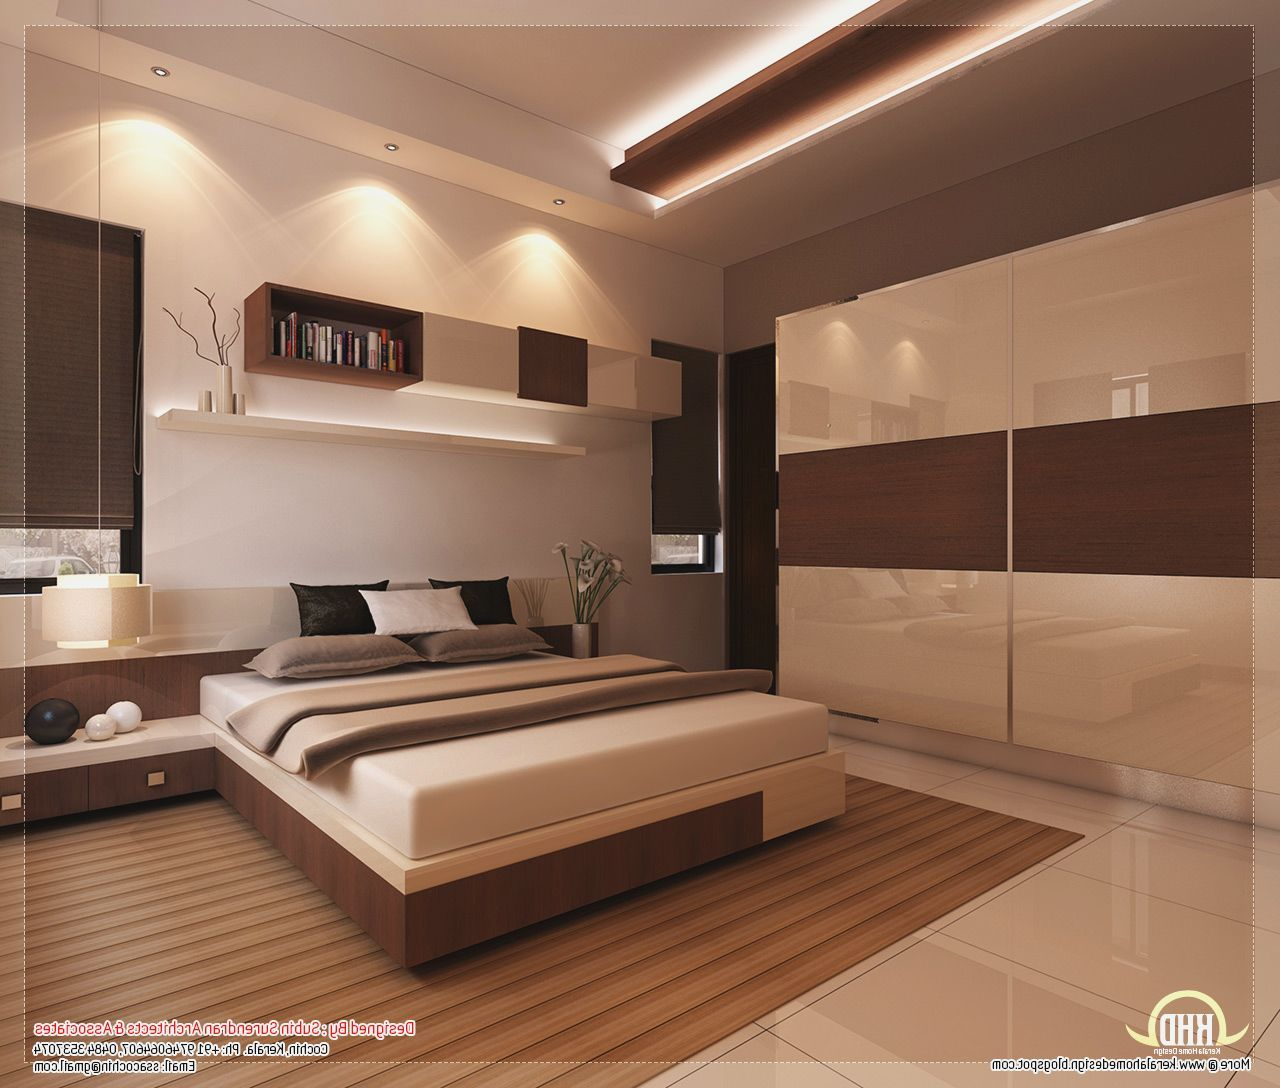 Bedroom Designs India Low Cost More Picture Bedroom Designs India Low Cost  Please Visit Www.